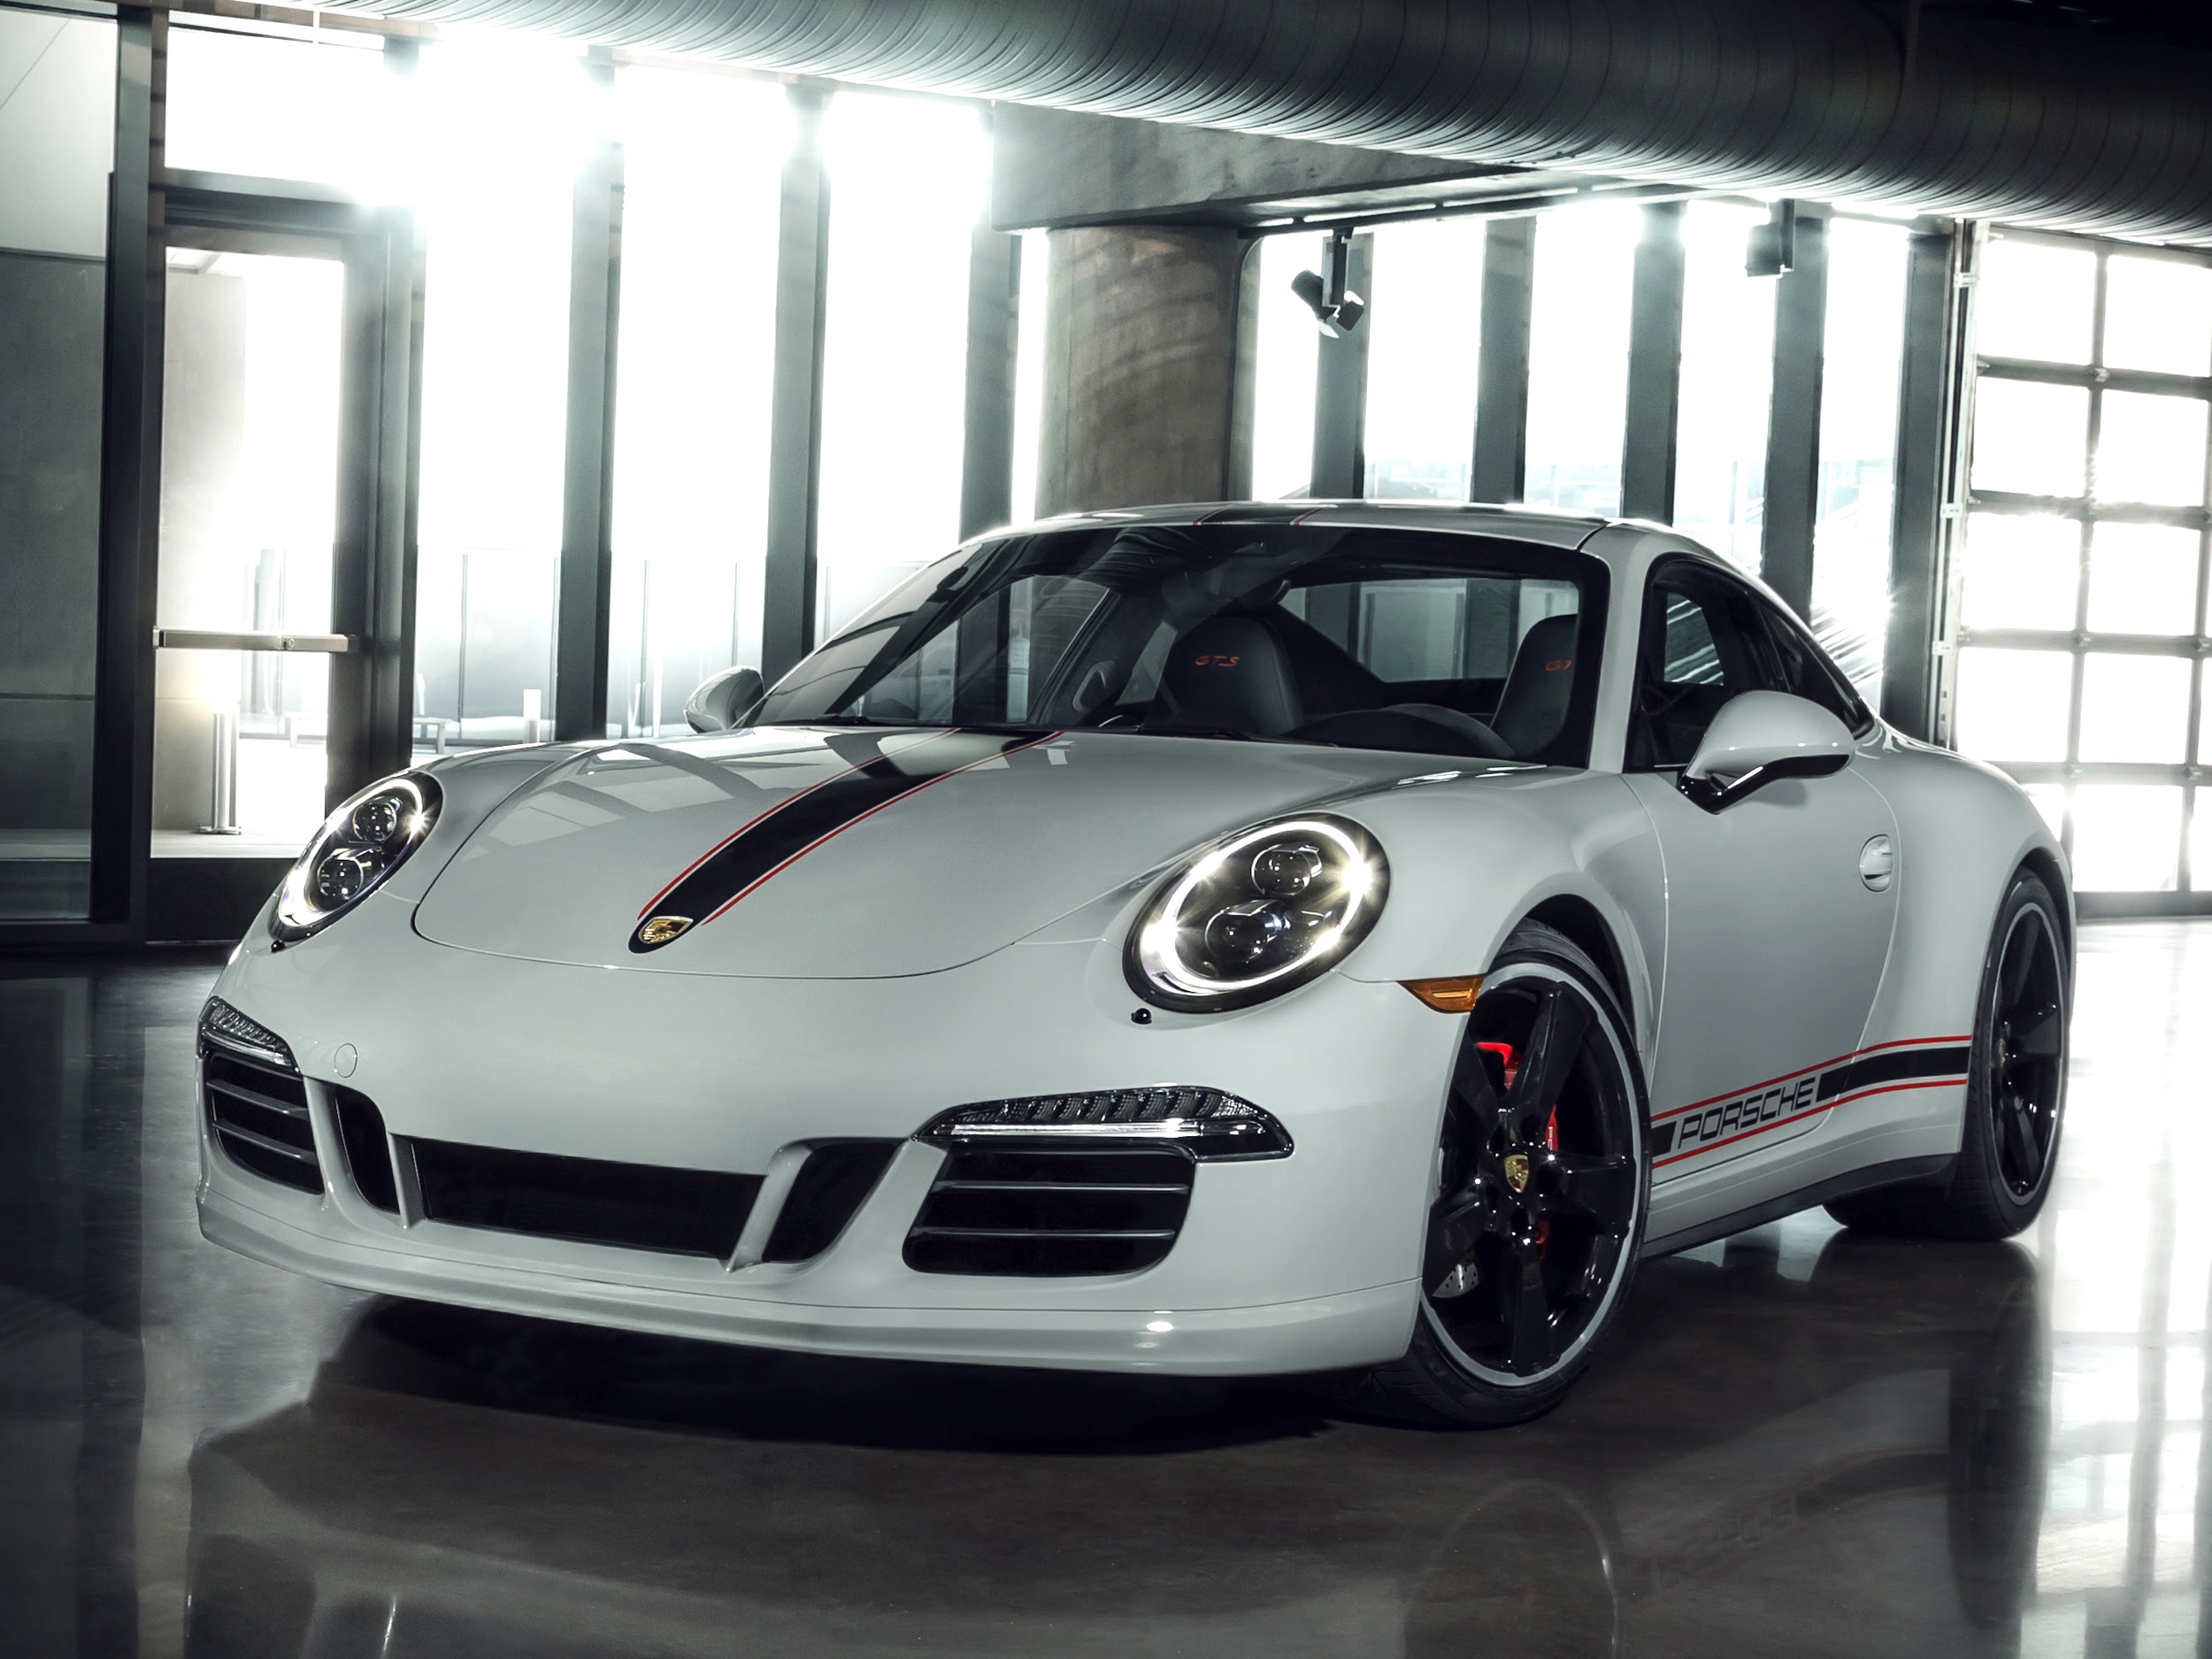 Porsche unveils limited edition US-only 911